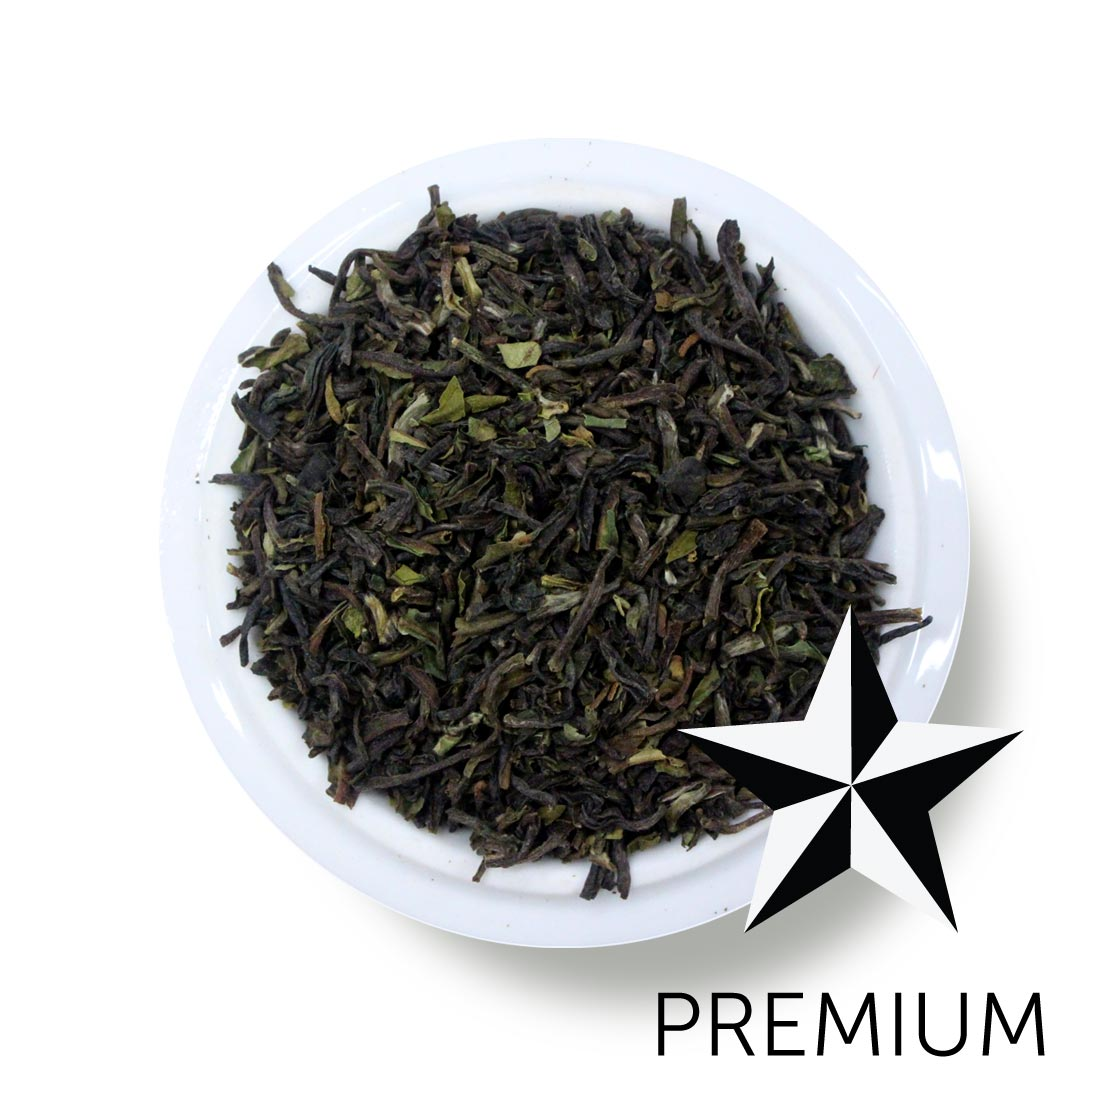 Premium Black Tea Organic First Flush Reserve